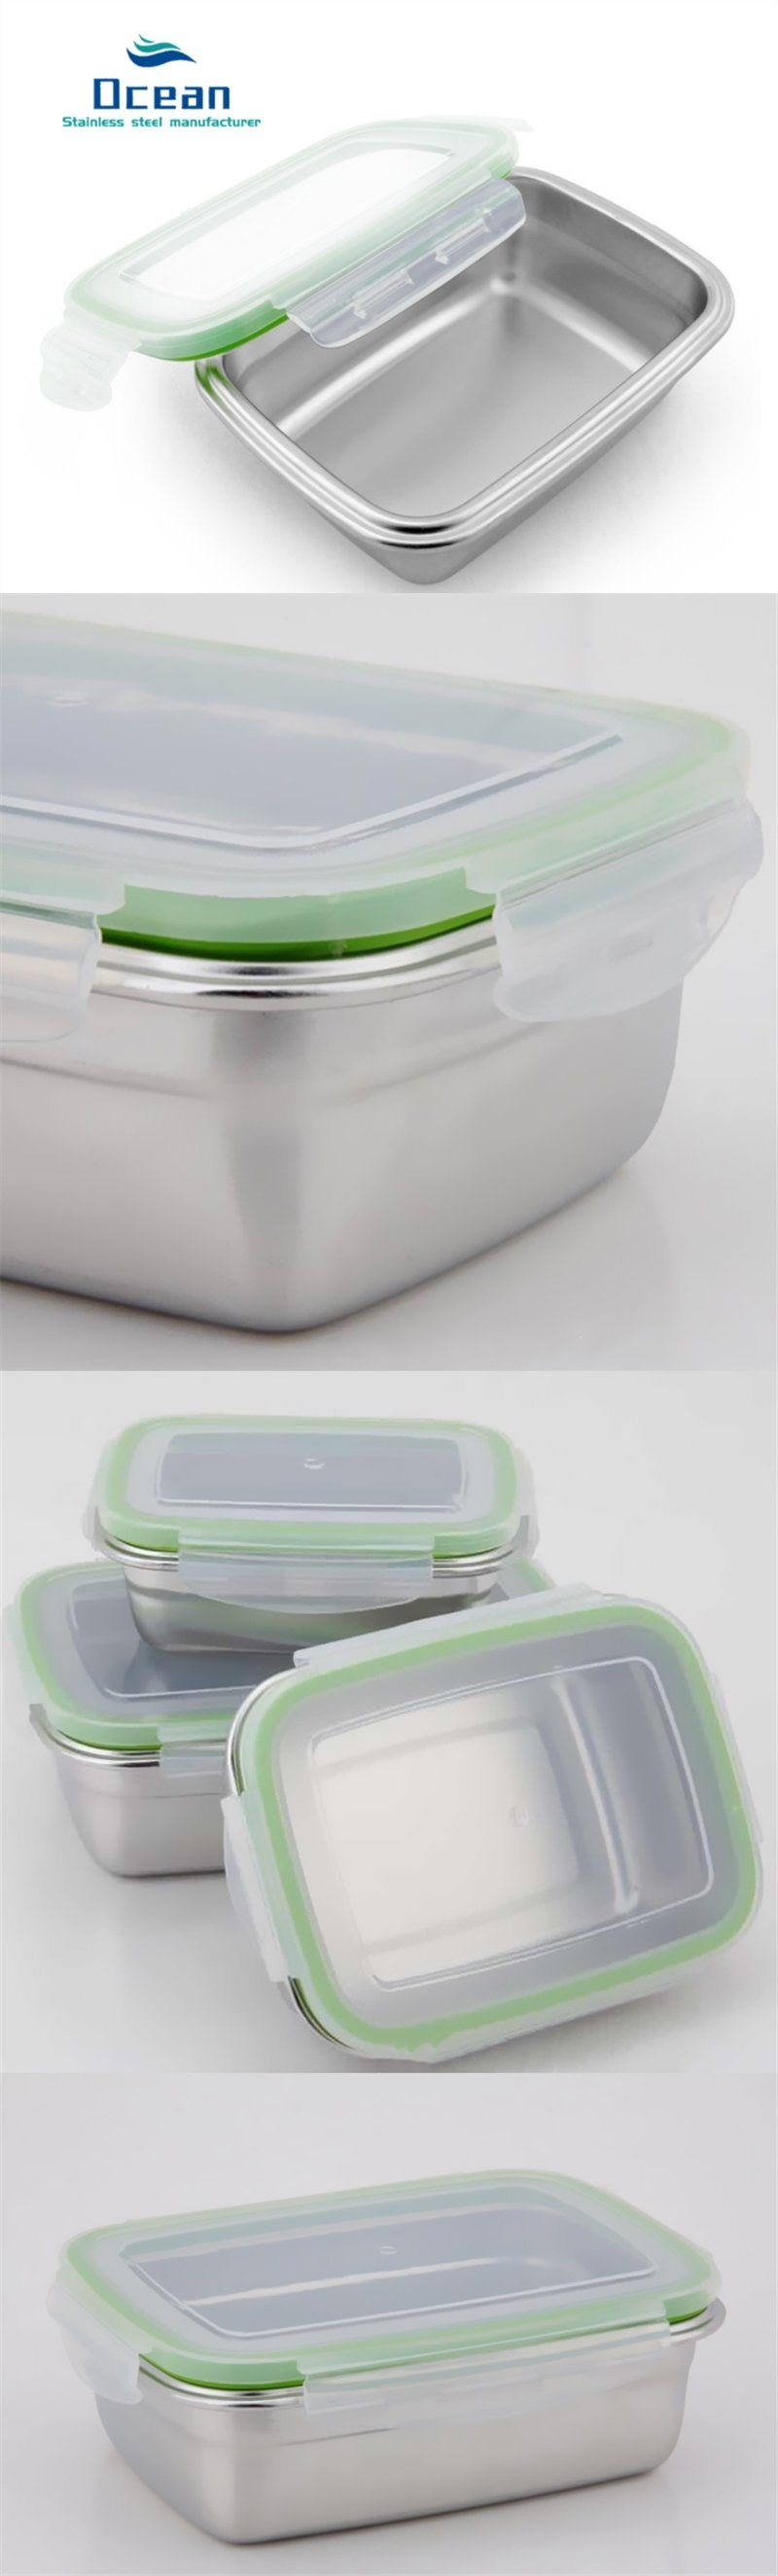 Stainless Steel Food Preservation Box Insulated Food Box (3)